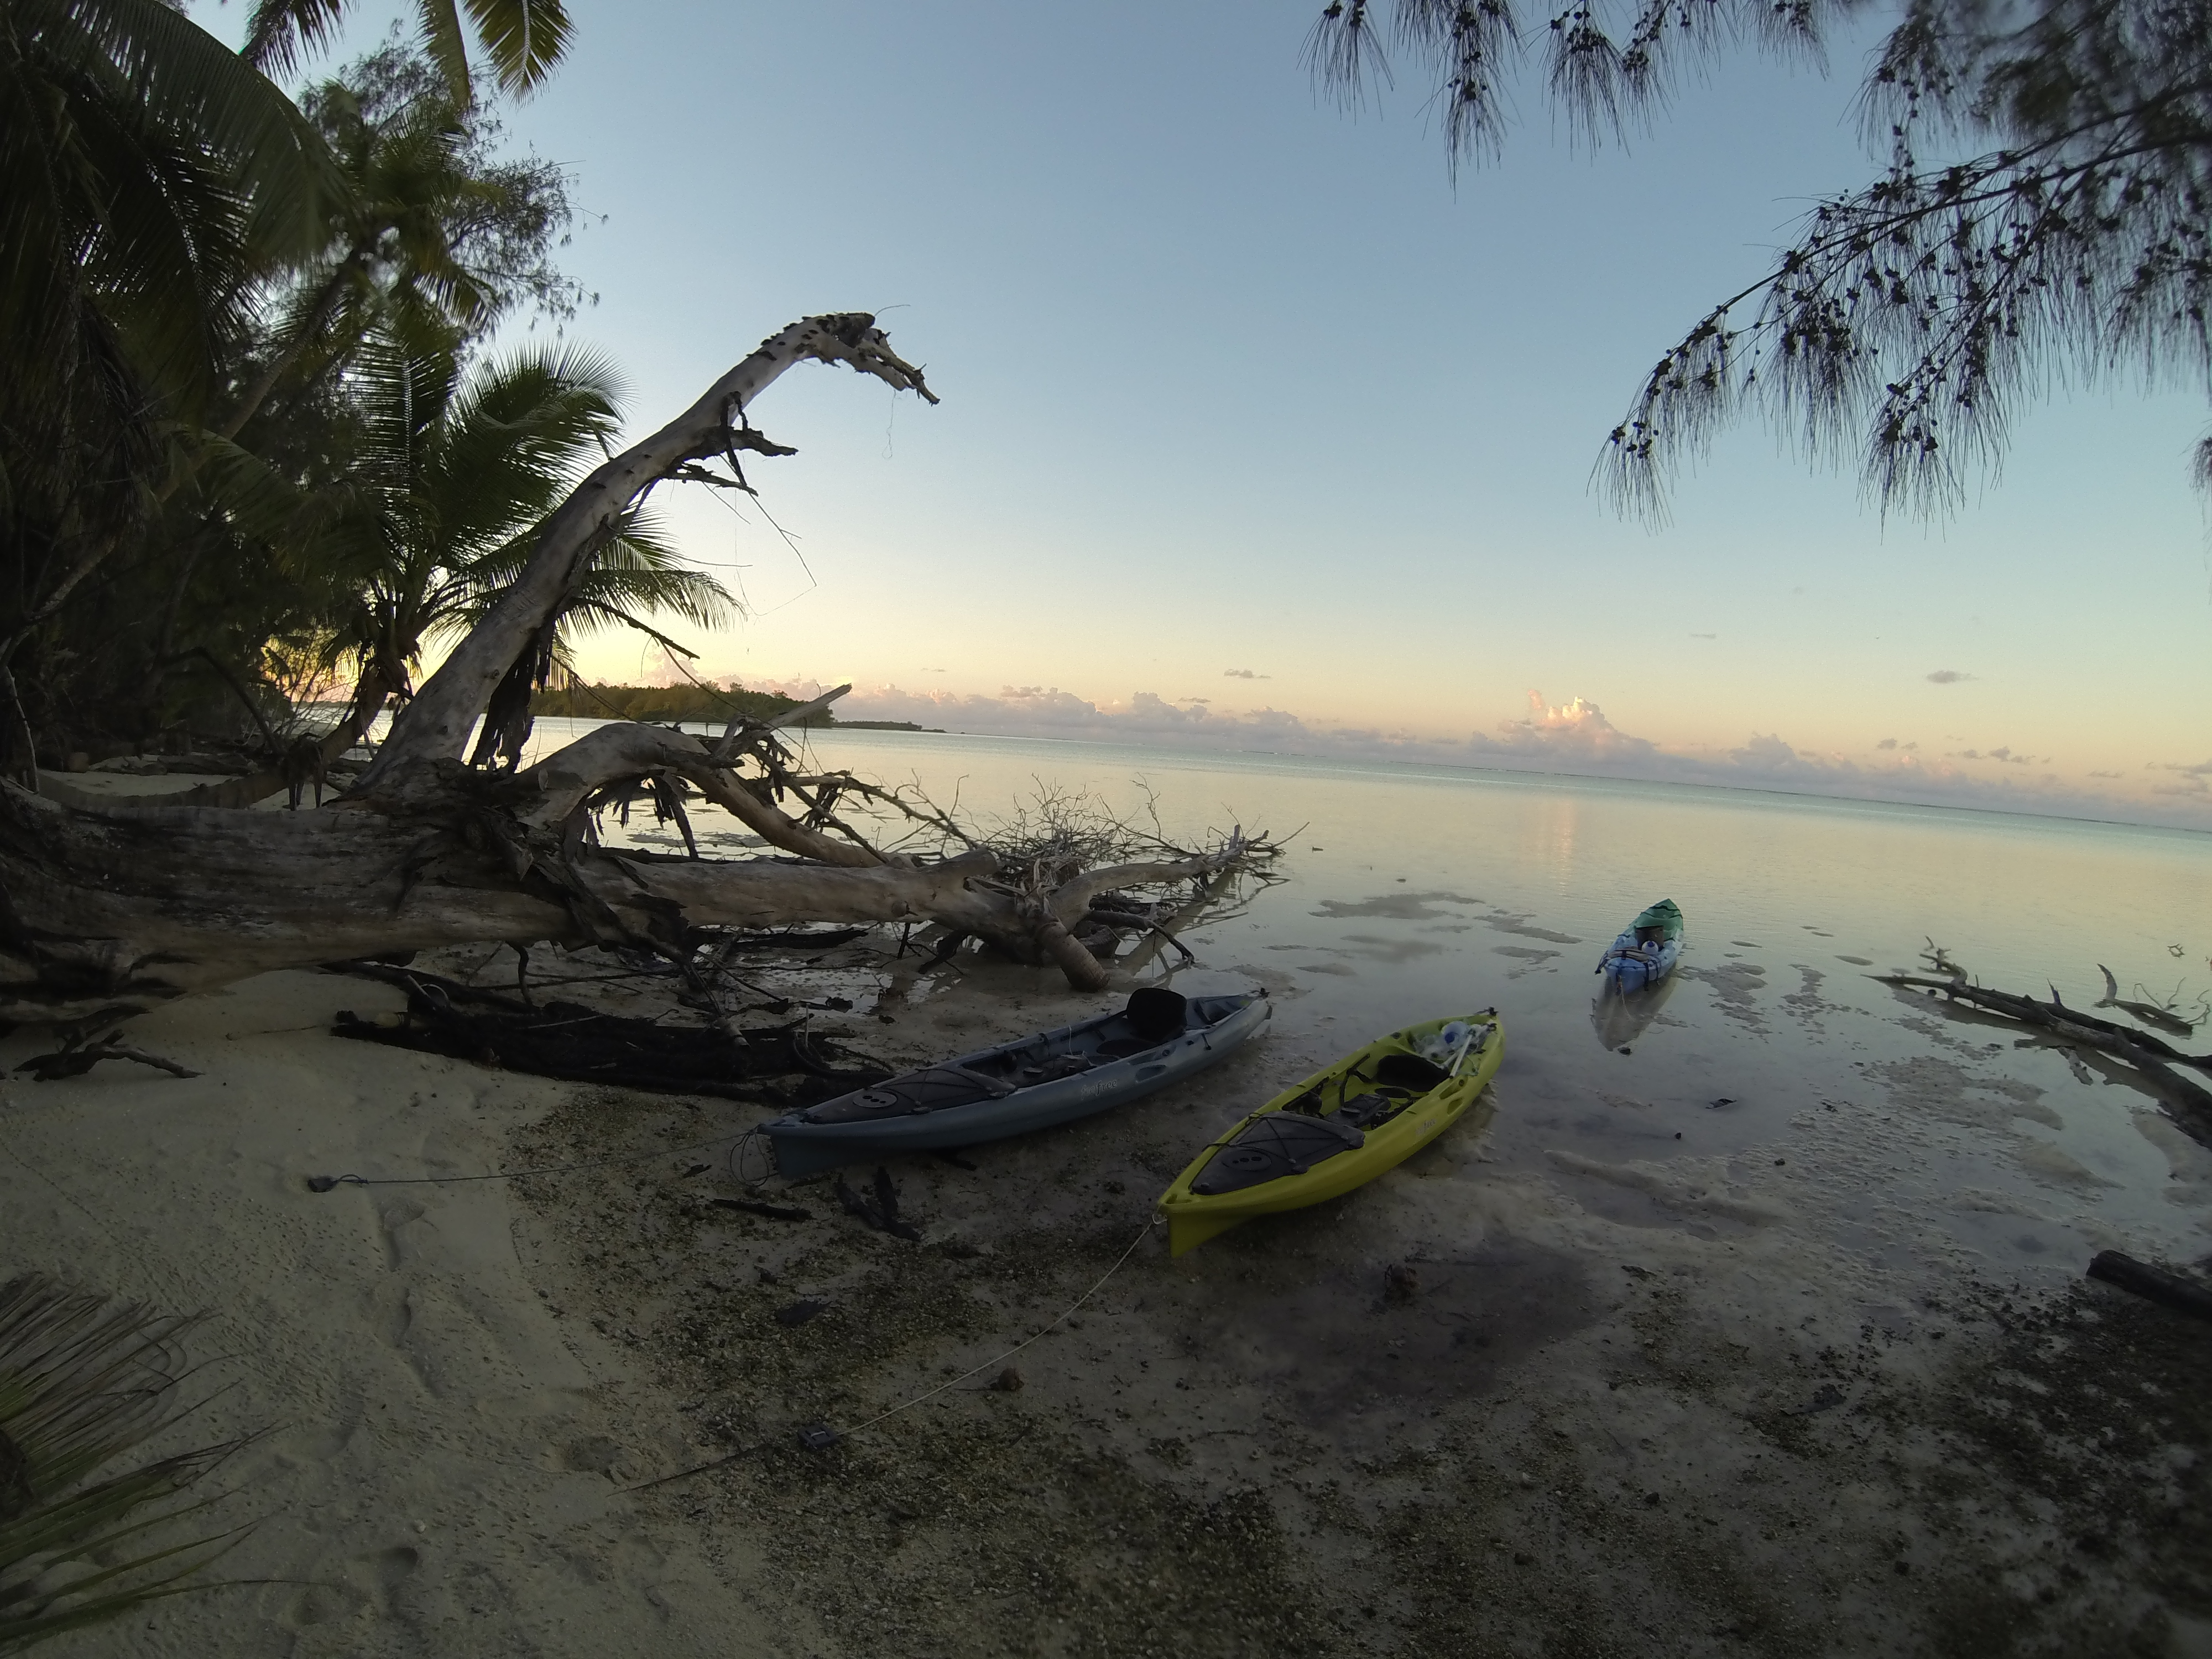 Sunset view from the St Joseph camp, with our three field work kayaks in the foreground. Photo by Ornella Weideli